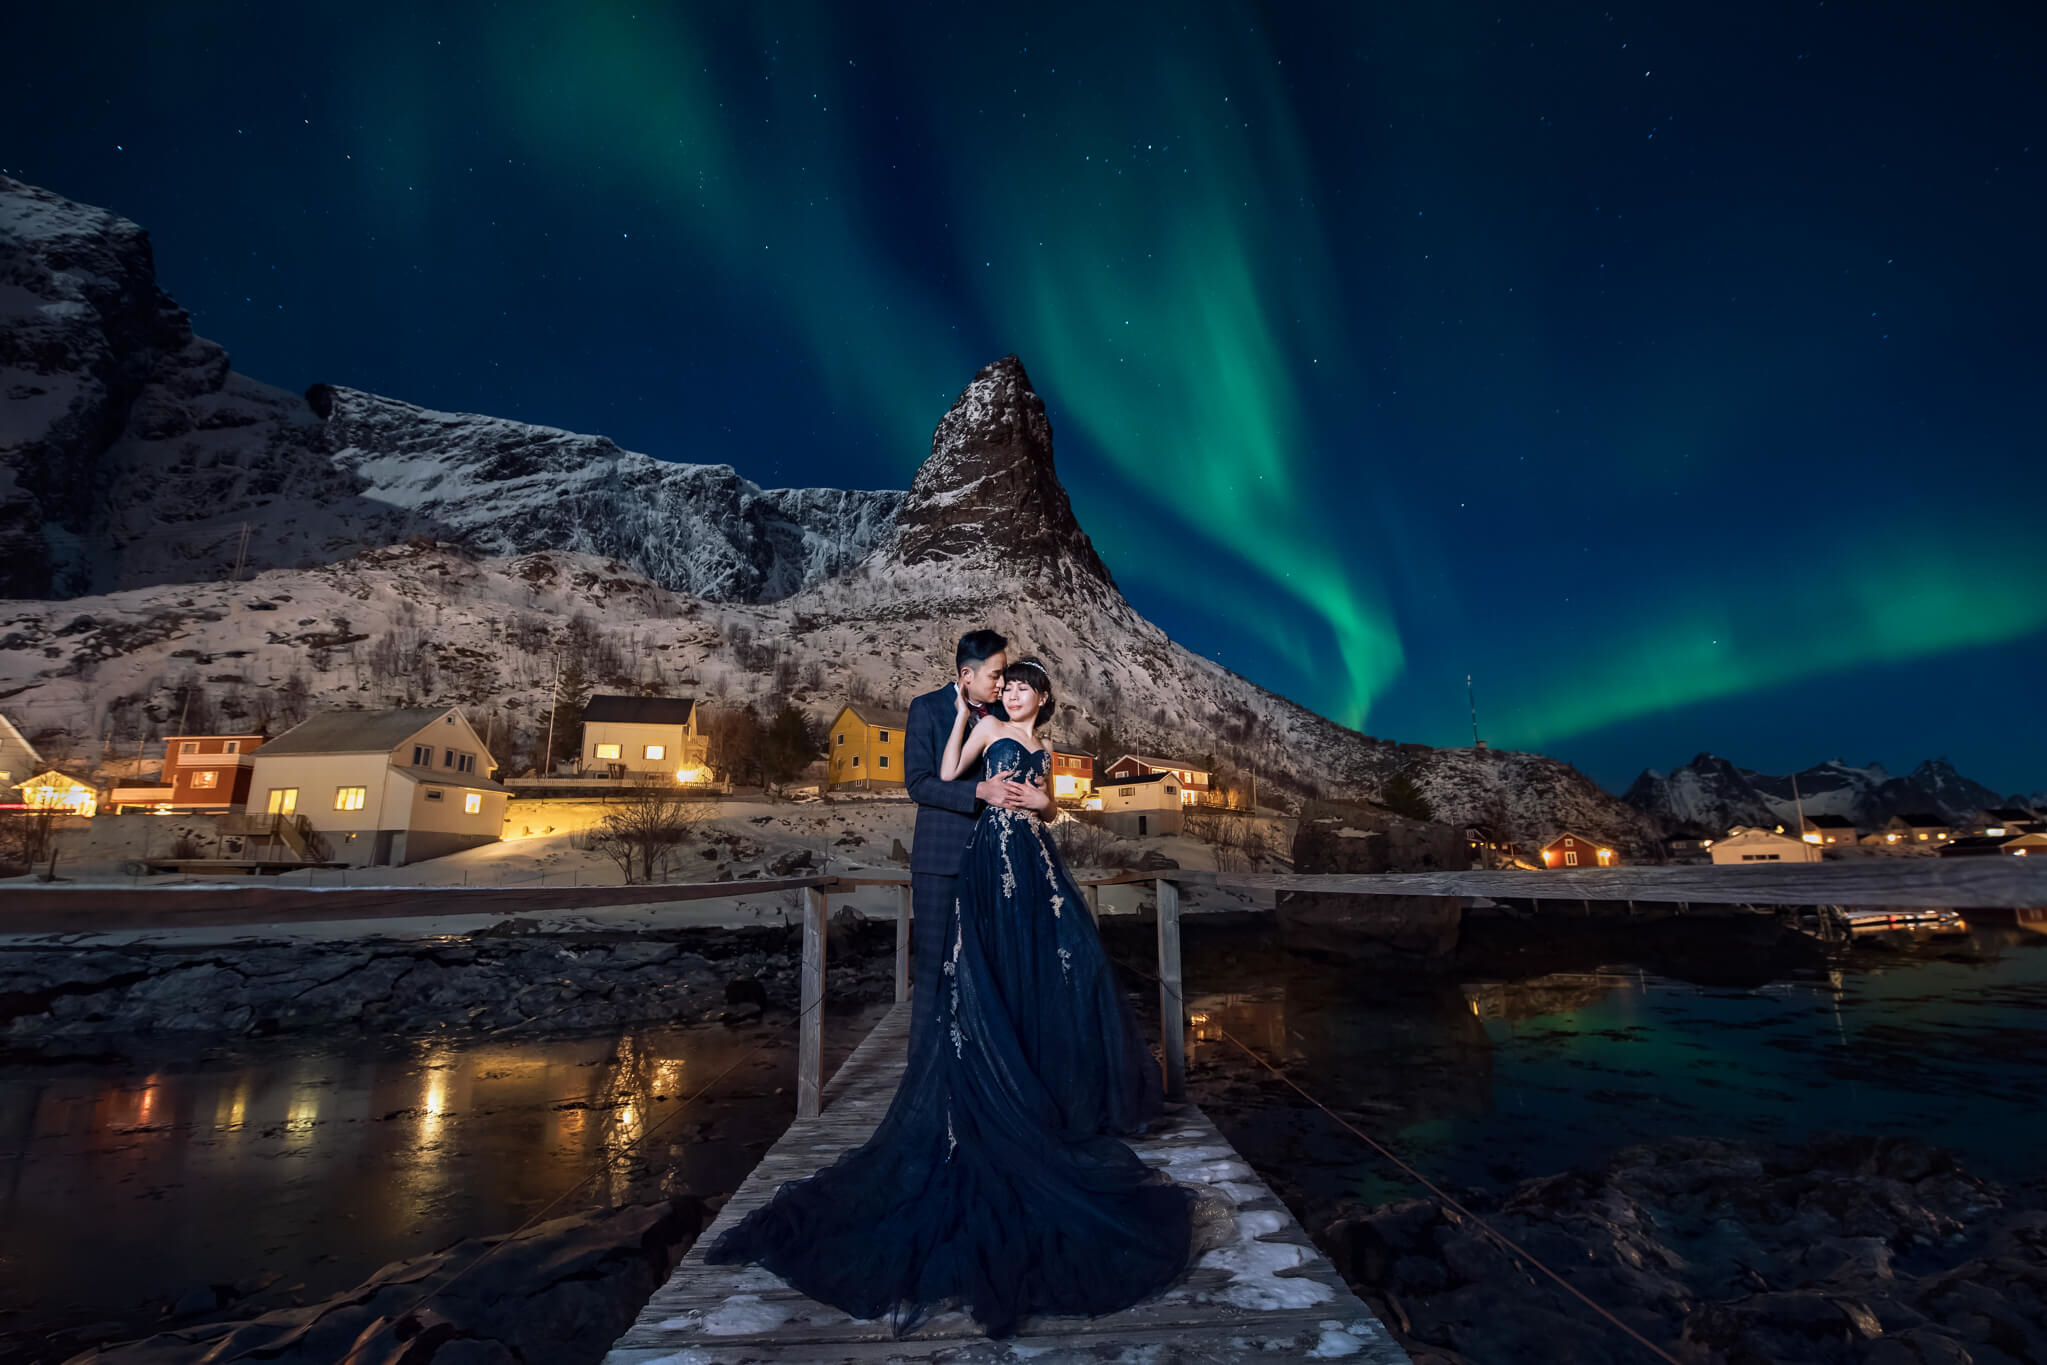 東法, 藝術婚紗, Donfer, Donfer Photography, EASTERN WEDDING, 海外婚紗, 挪威婚紗, Norway Pre-Wedding, Lofoten, Tromso